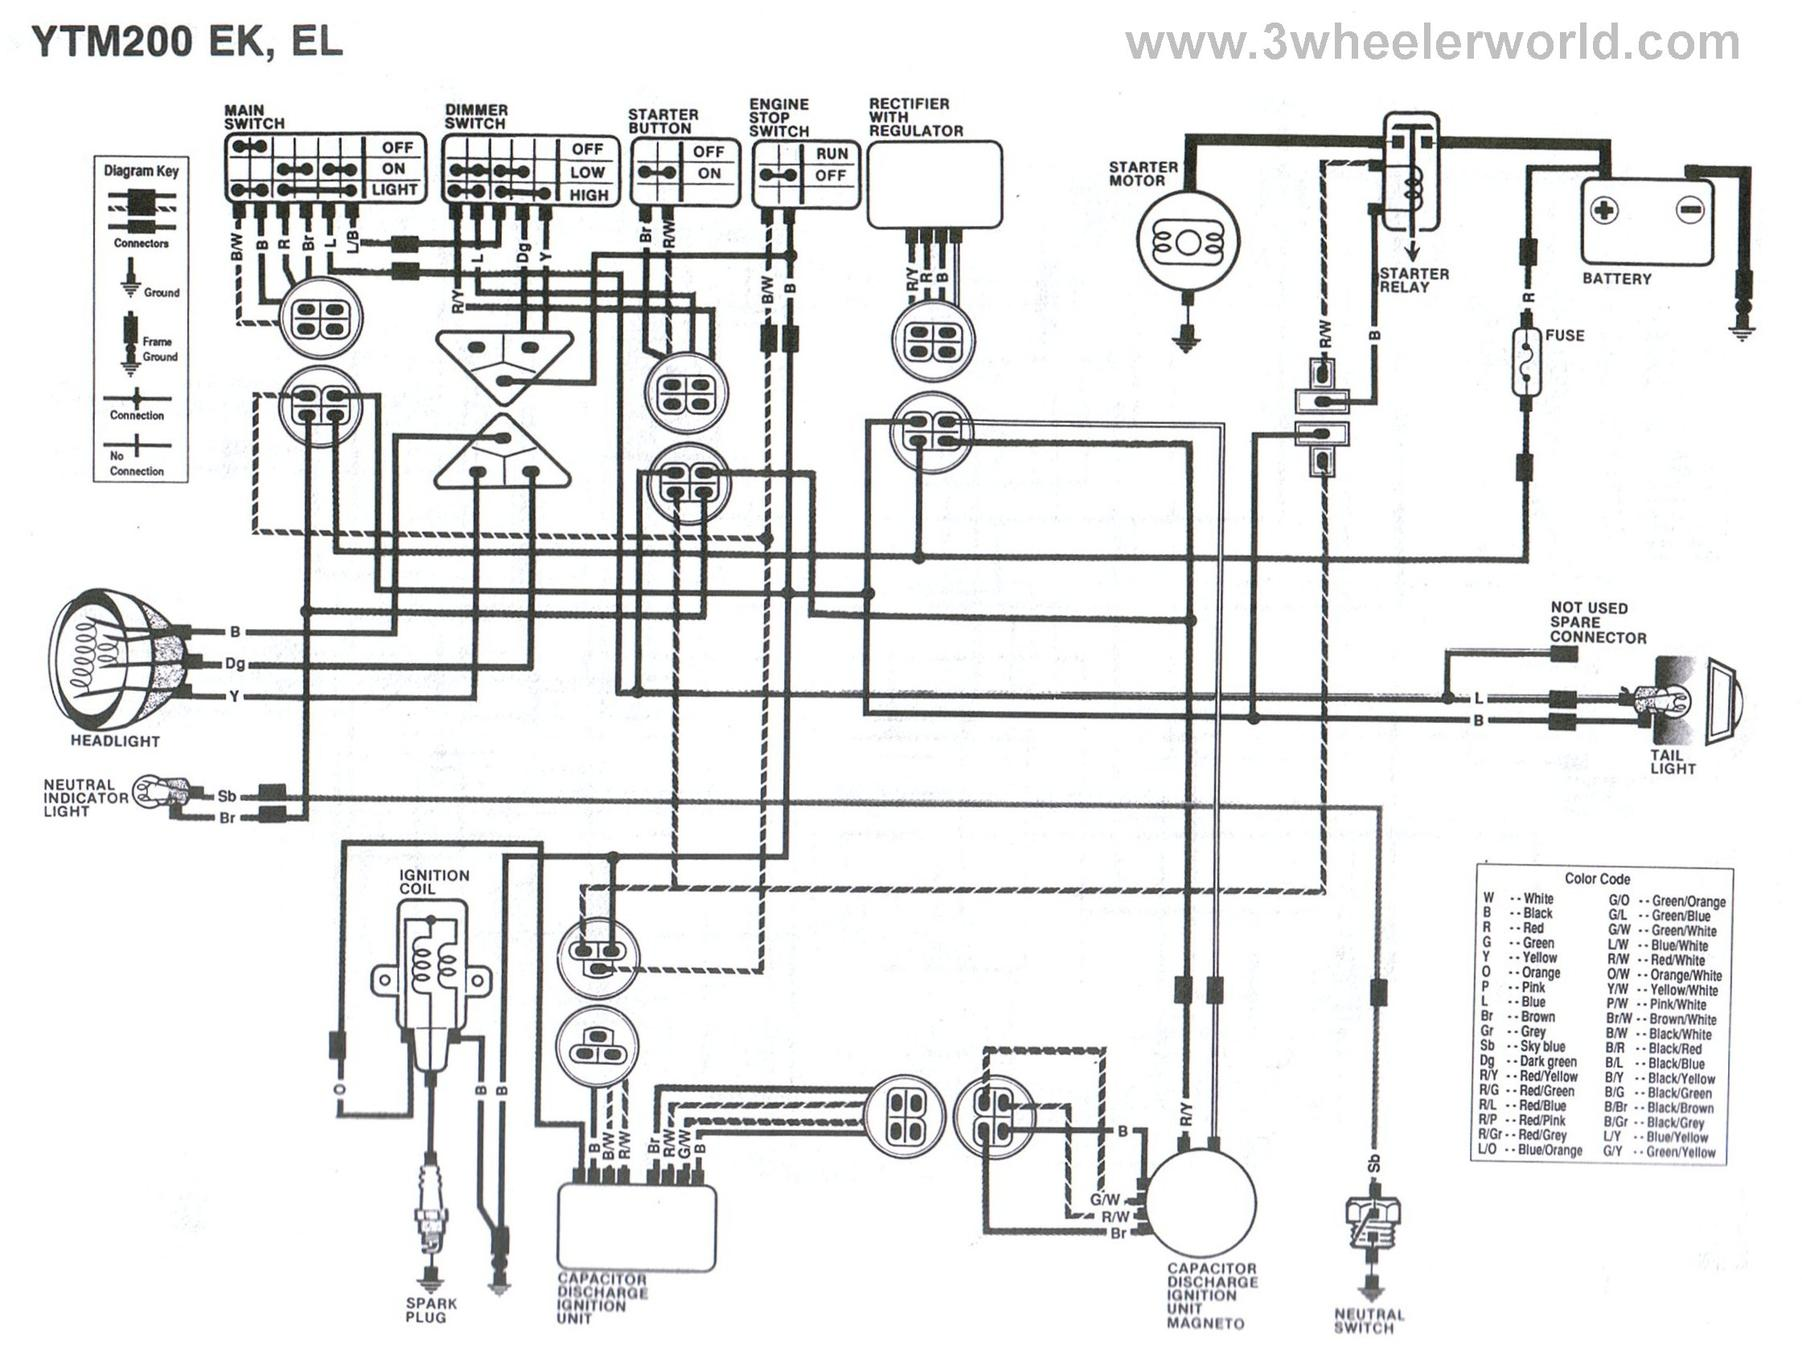 2006 honda trx450r wiring diagram wikishare marvellous 2004 honda trx450r wiring diagram ideas best image swarovskicordoba Image collections